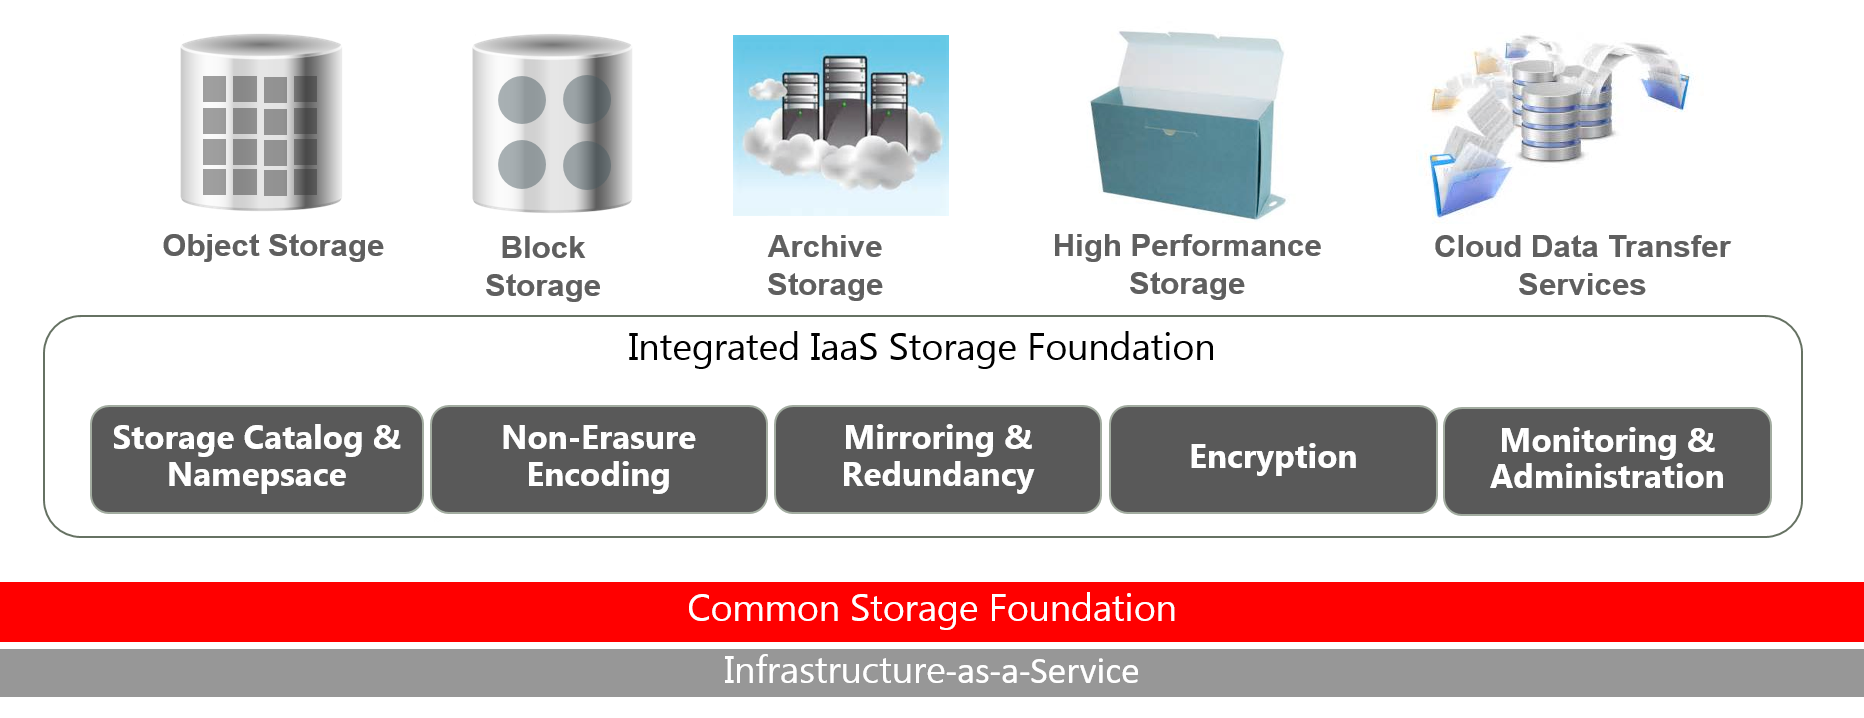 Oracle Storage Cloud Service